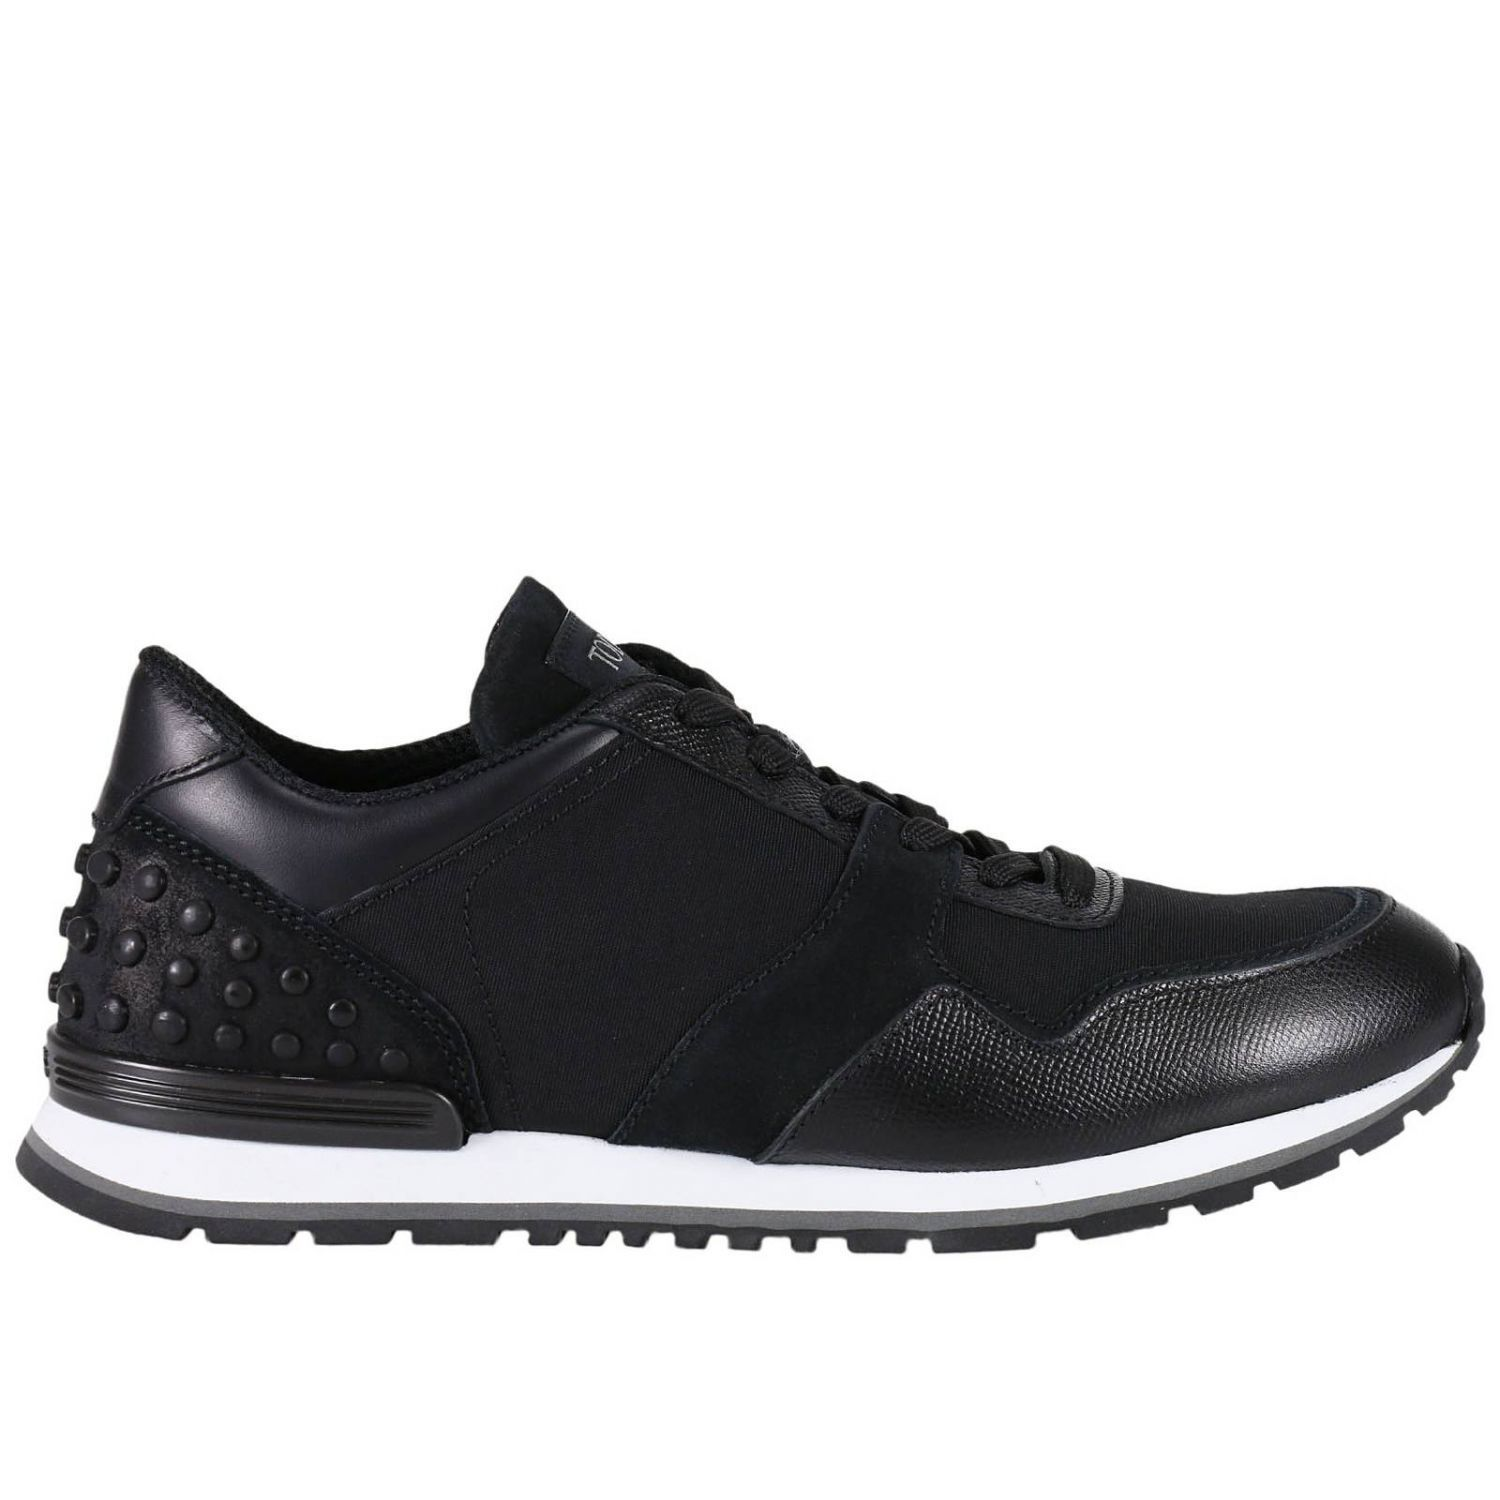 Sneakers Shoes Men Tods